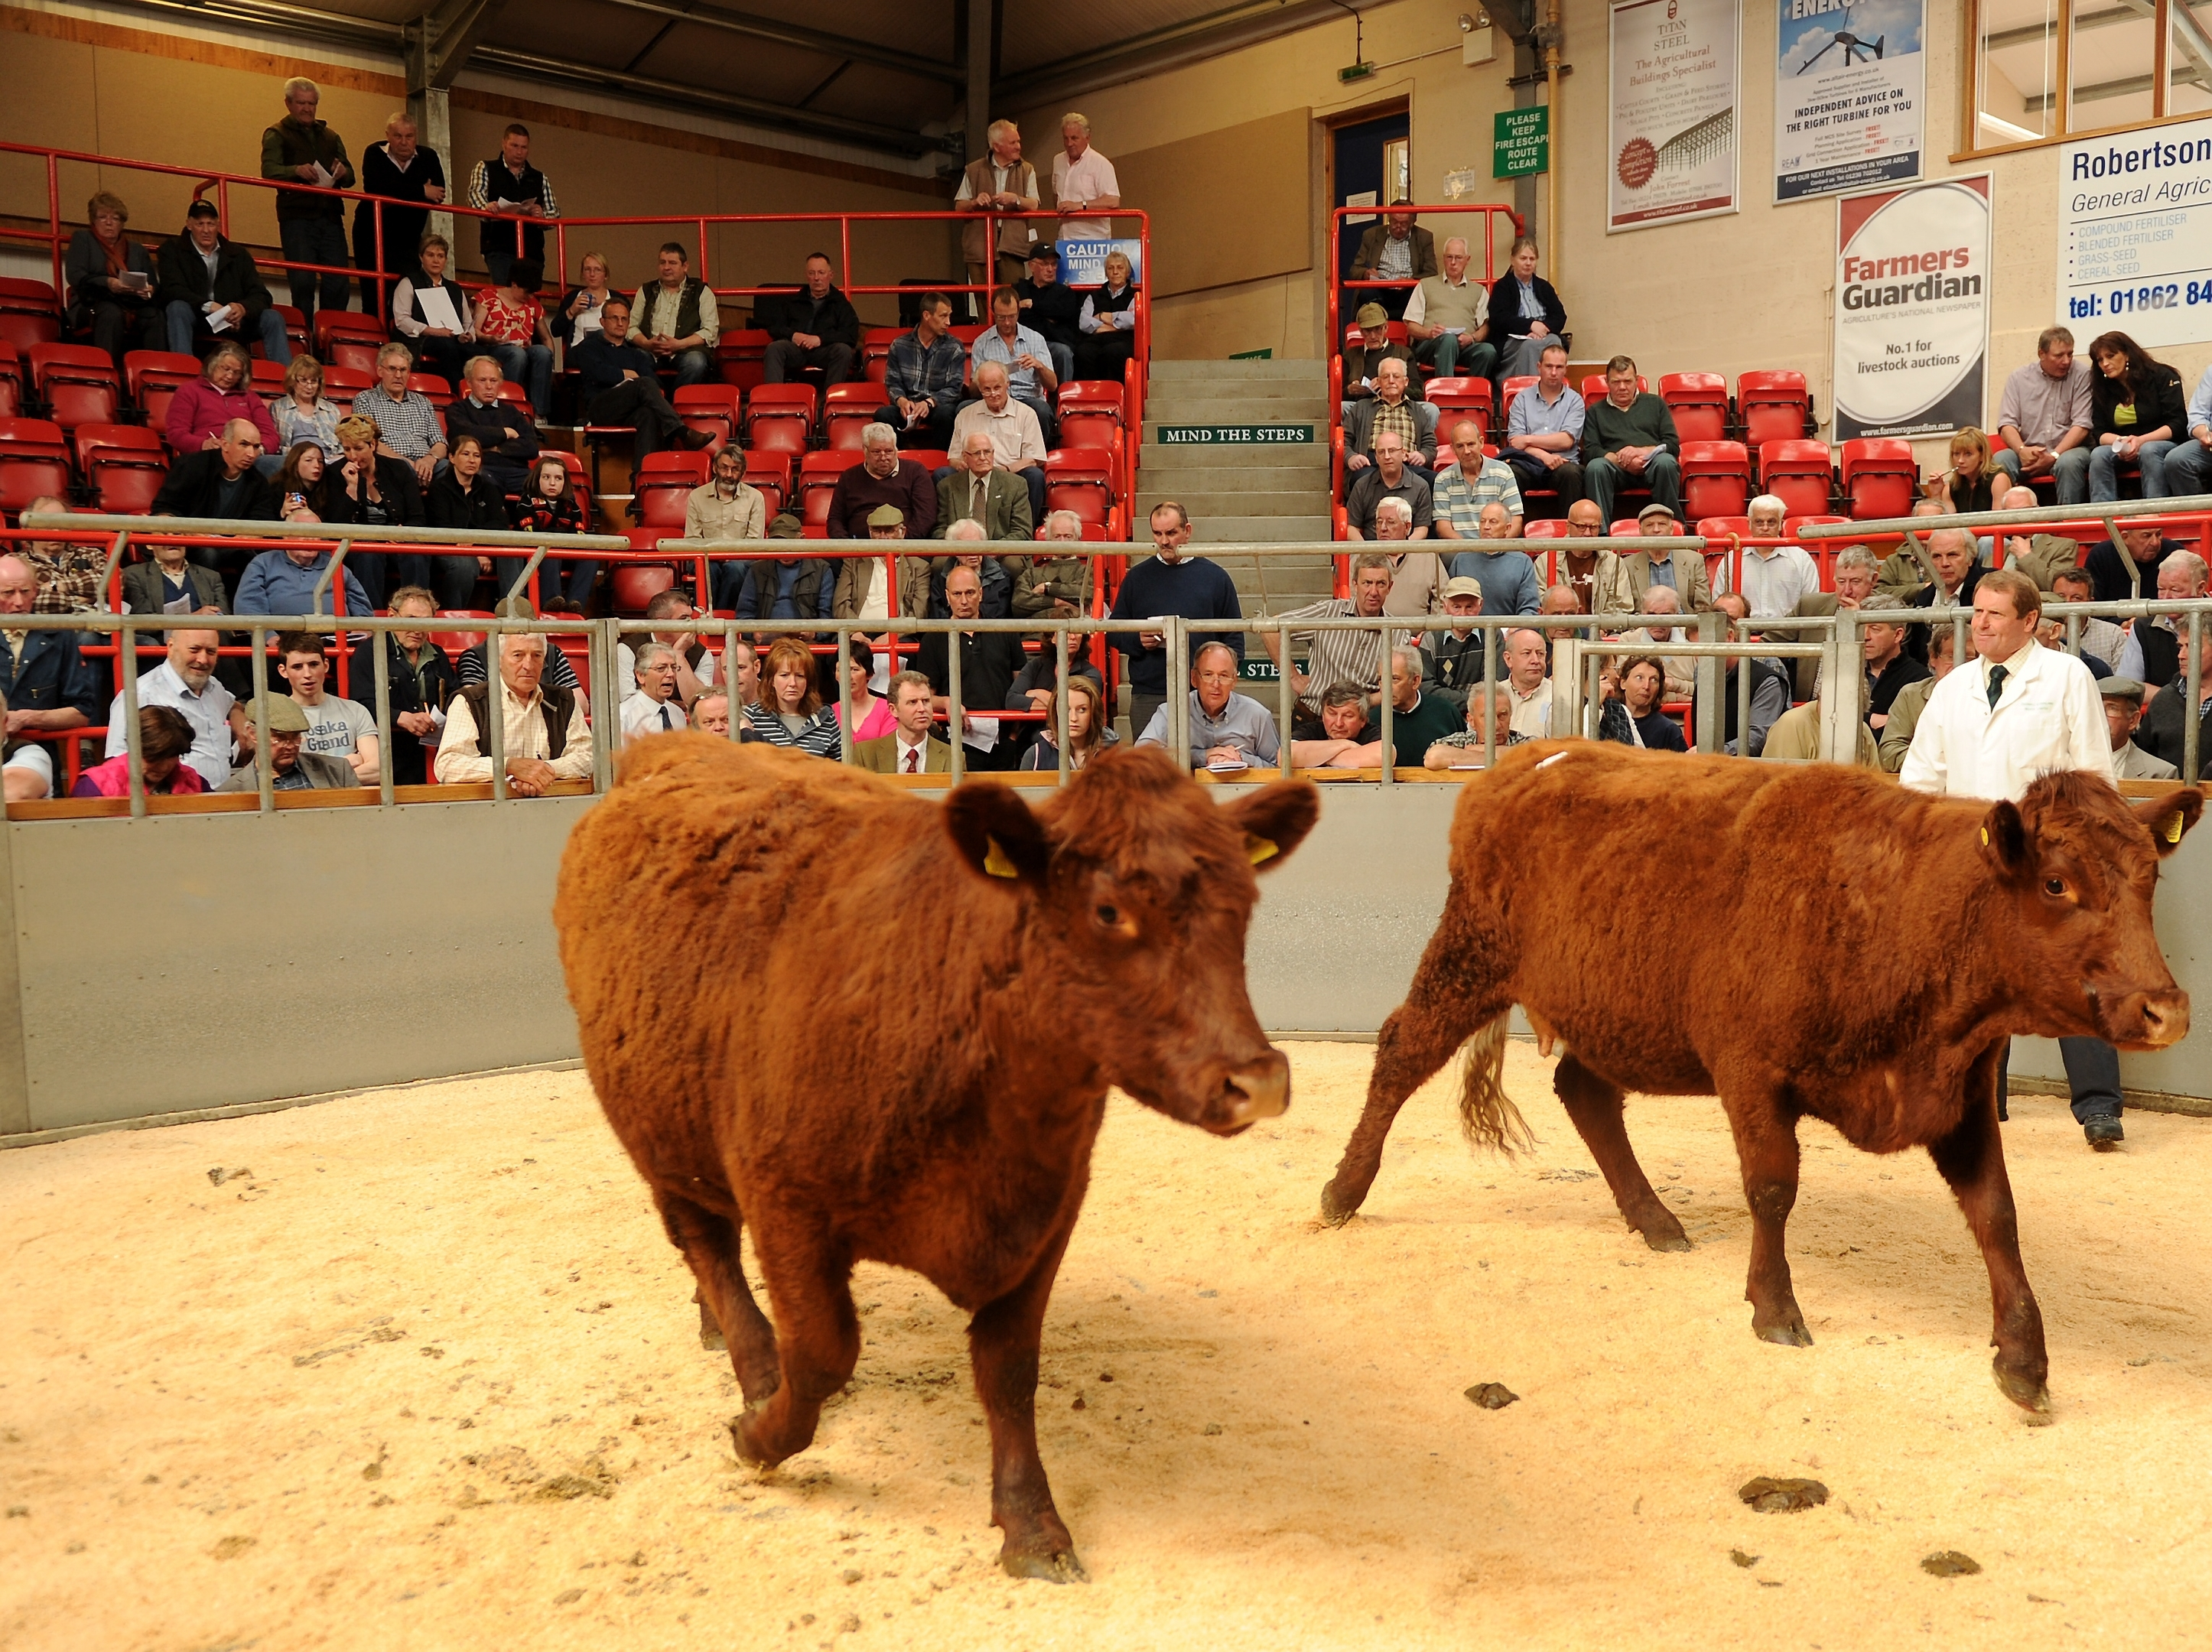 Luing Cattle at the mart in Dingwall.